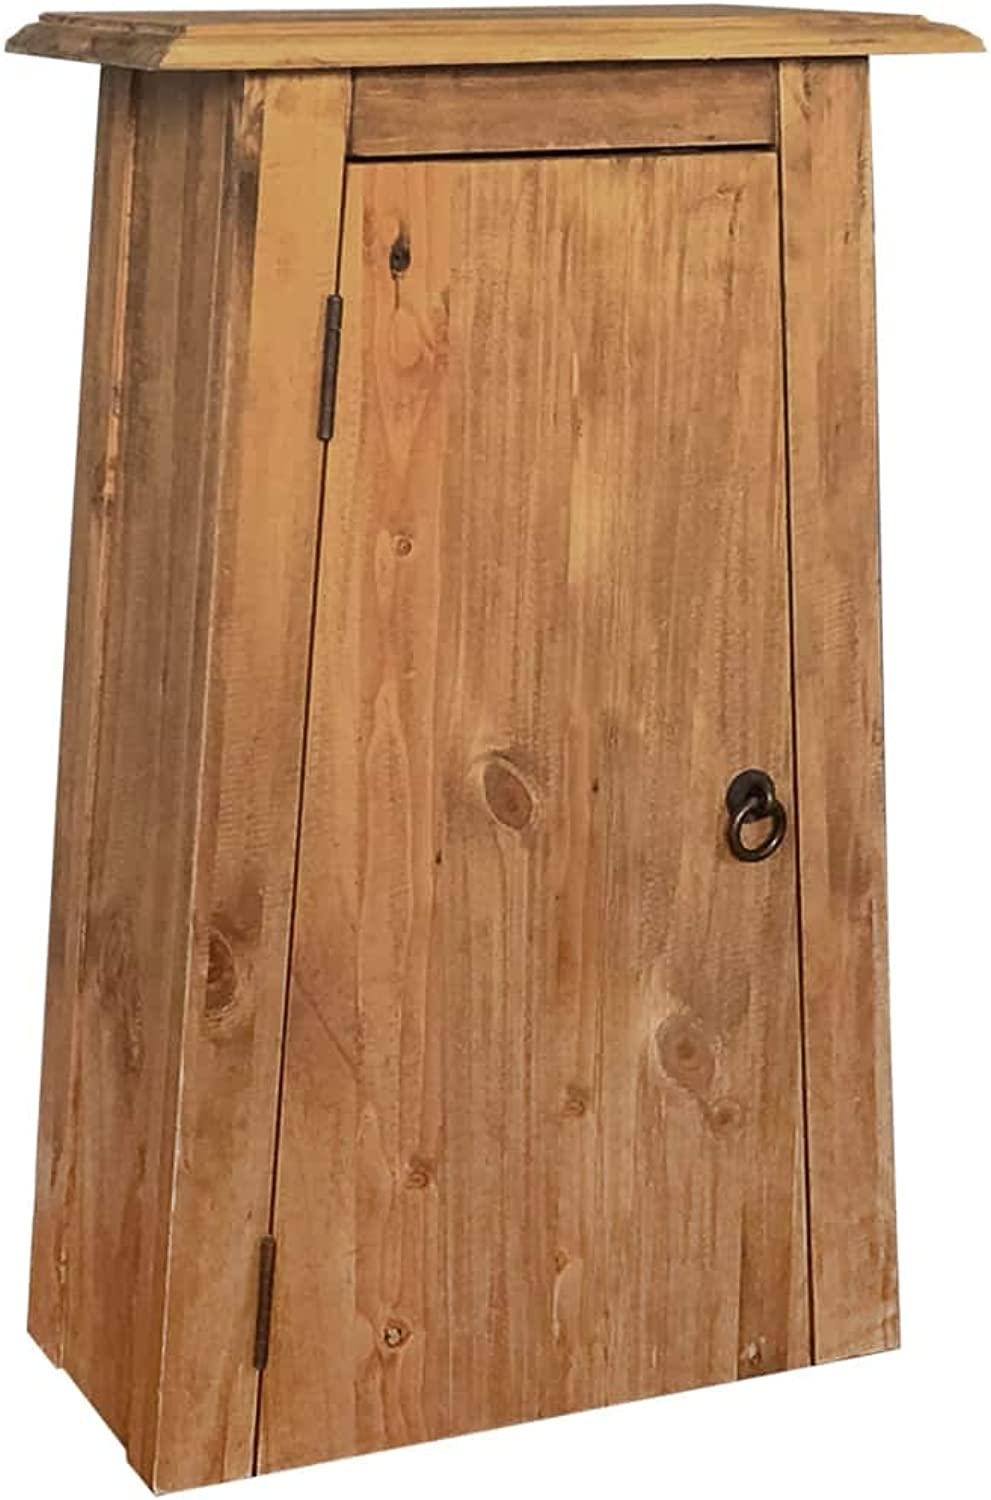 Festnight Bathroom Wall Cabinet Solid Recycled Pinewood 42x23x70 cm